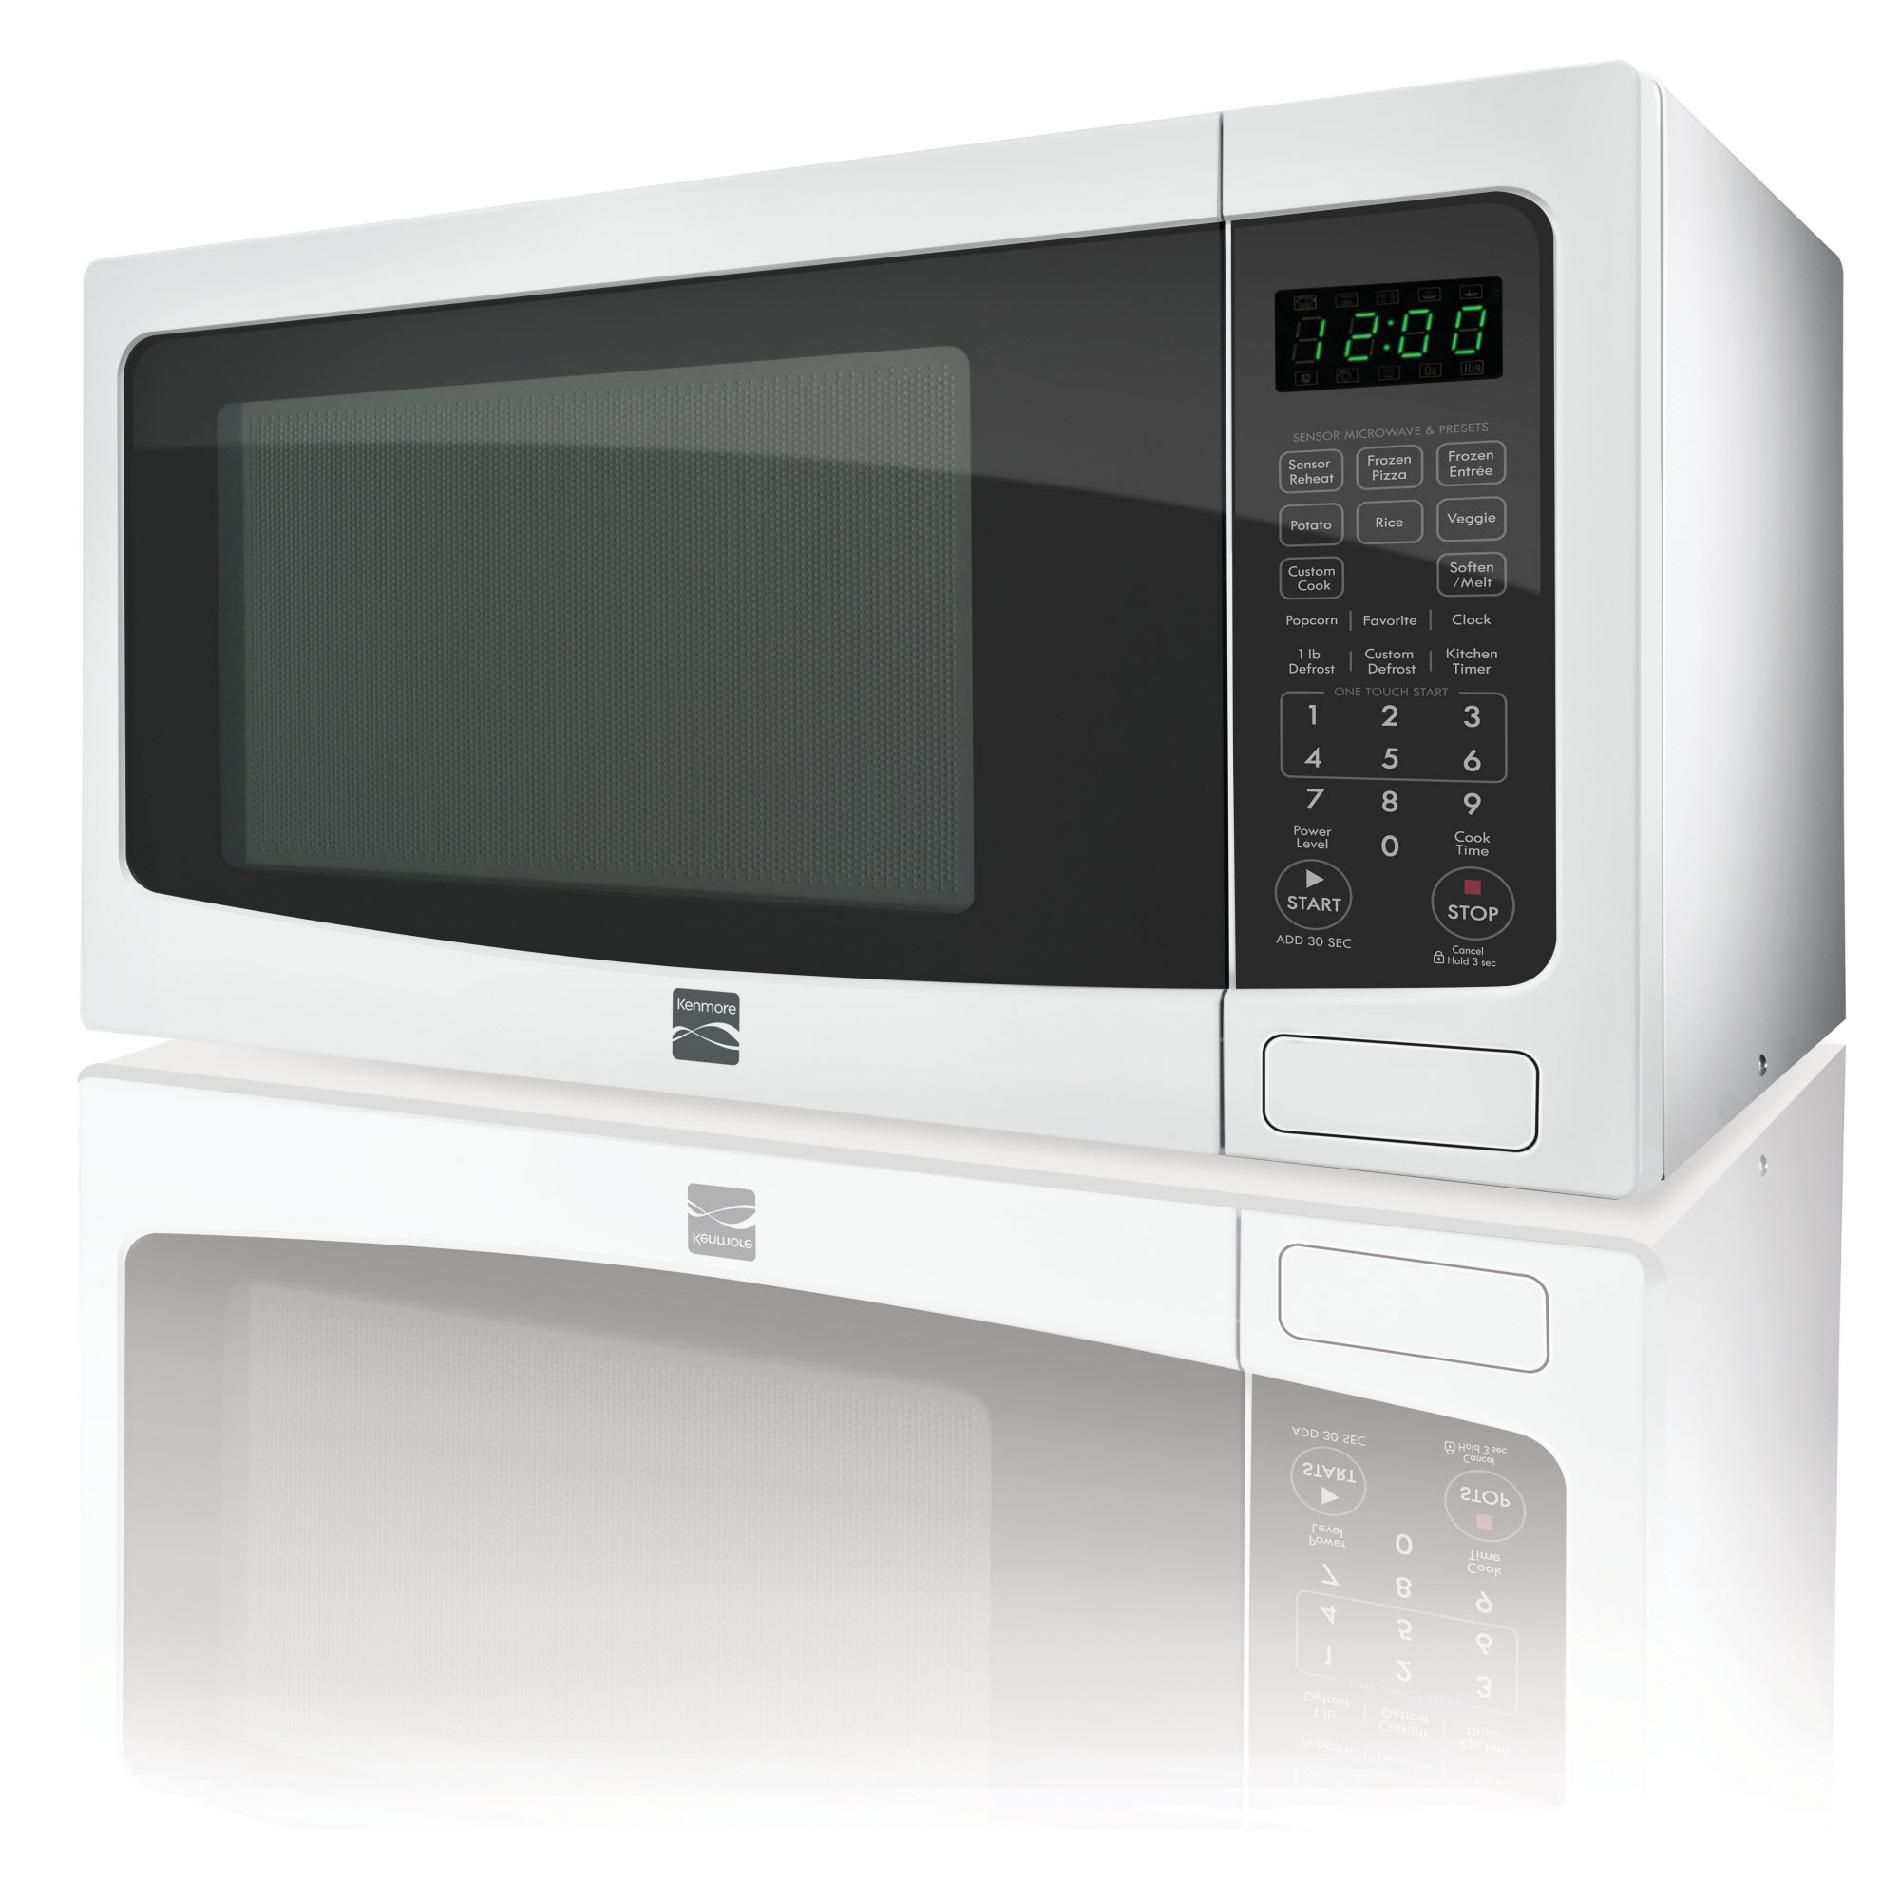 Kenmore 1.2  cu. ft. Countertop Microwave w/ EZ Clean Interior - White